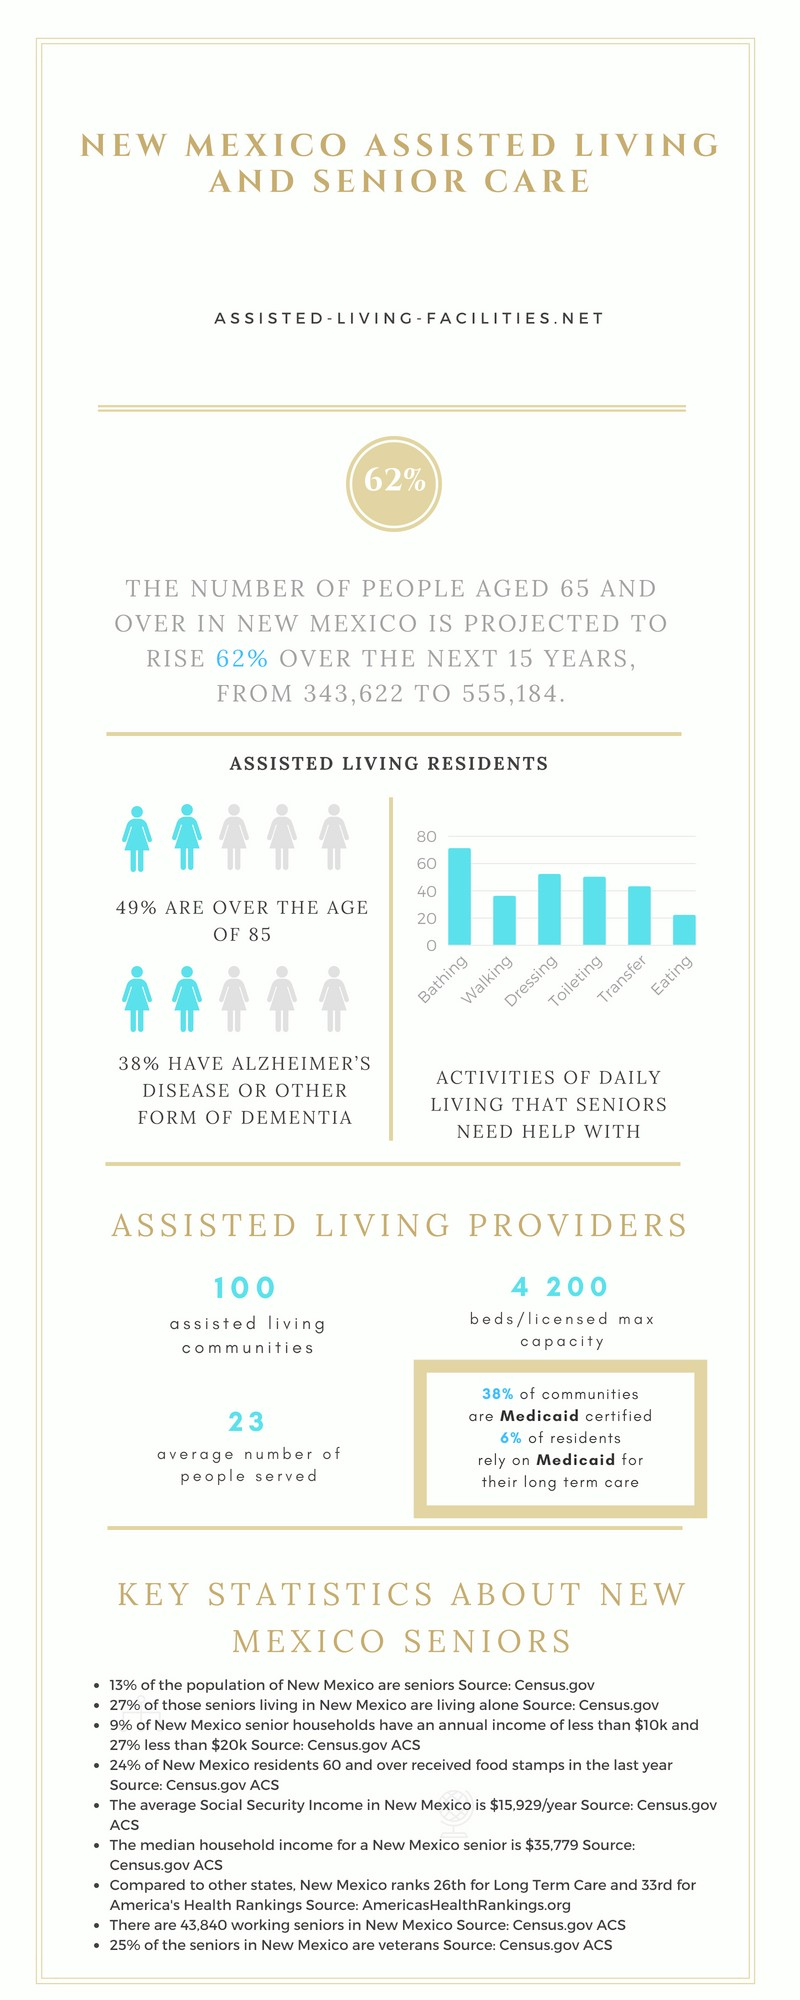 Assisted living in New Mexico